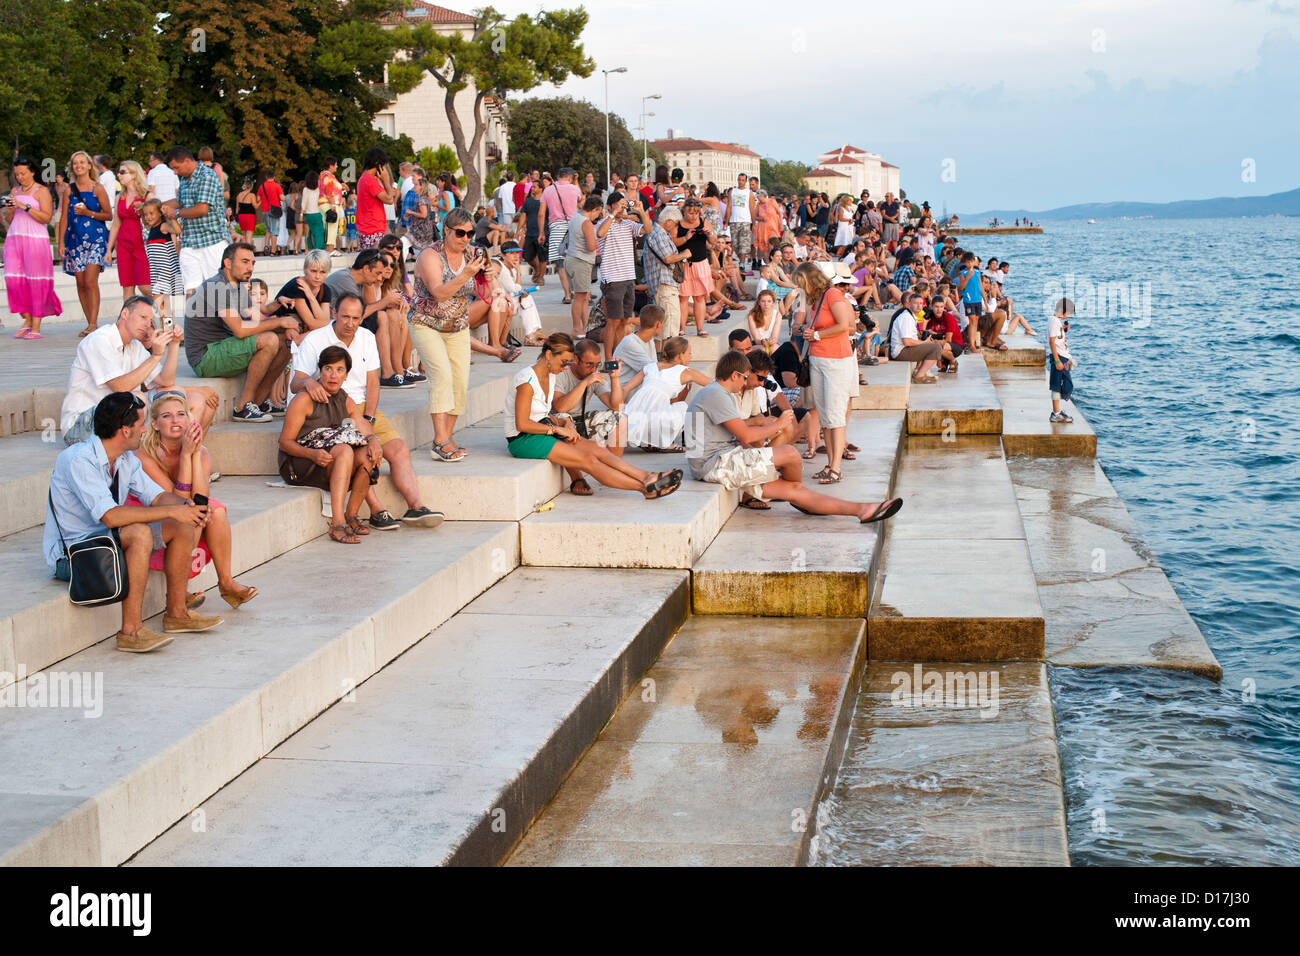 People on the steps of the 'Sea Organ' in Zadar on the Adriatic coast of Croatia. - Stock Image